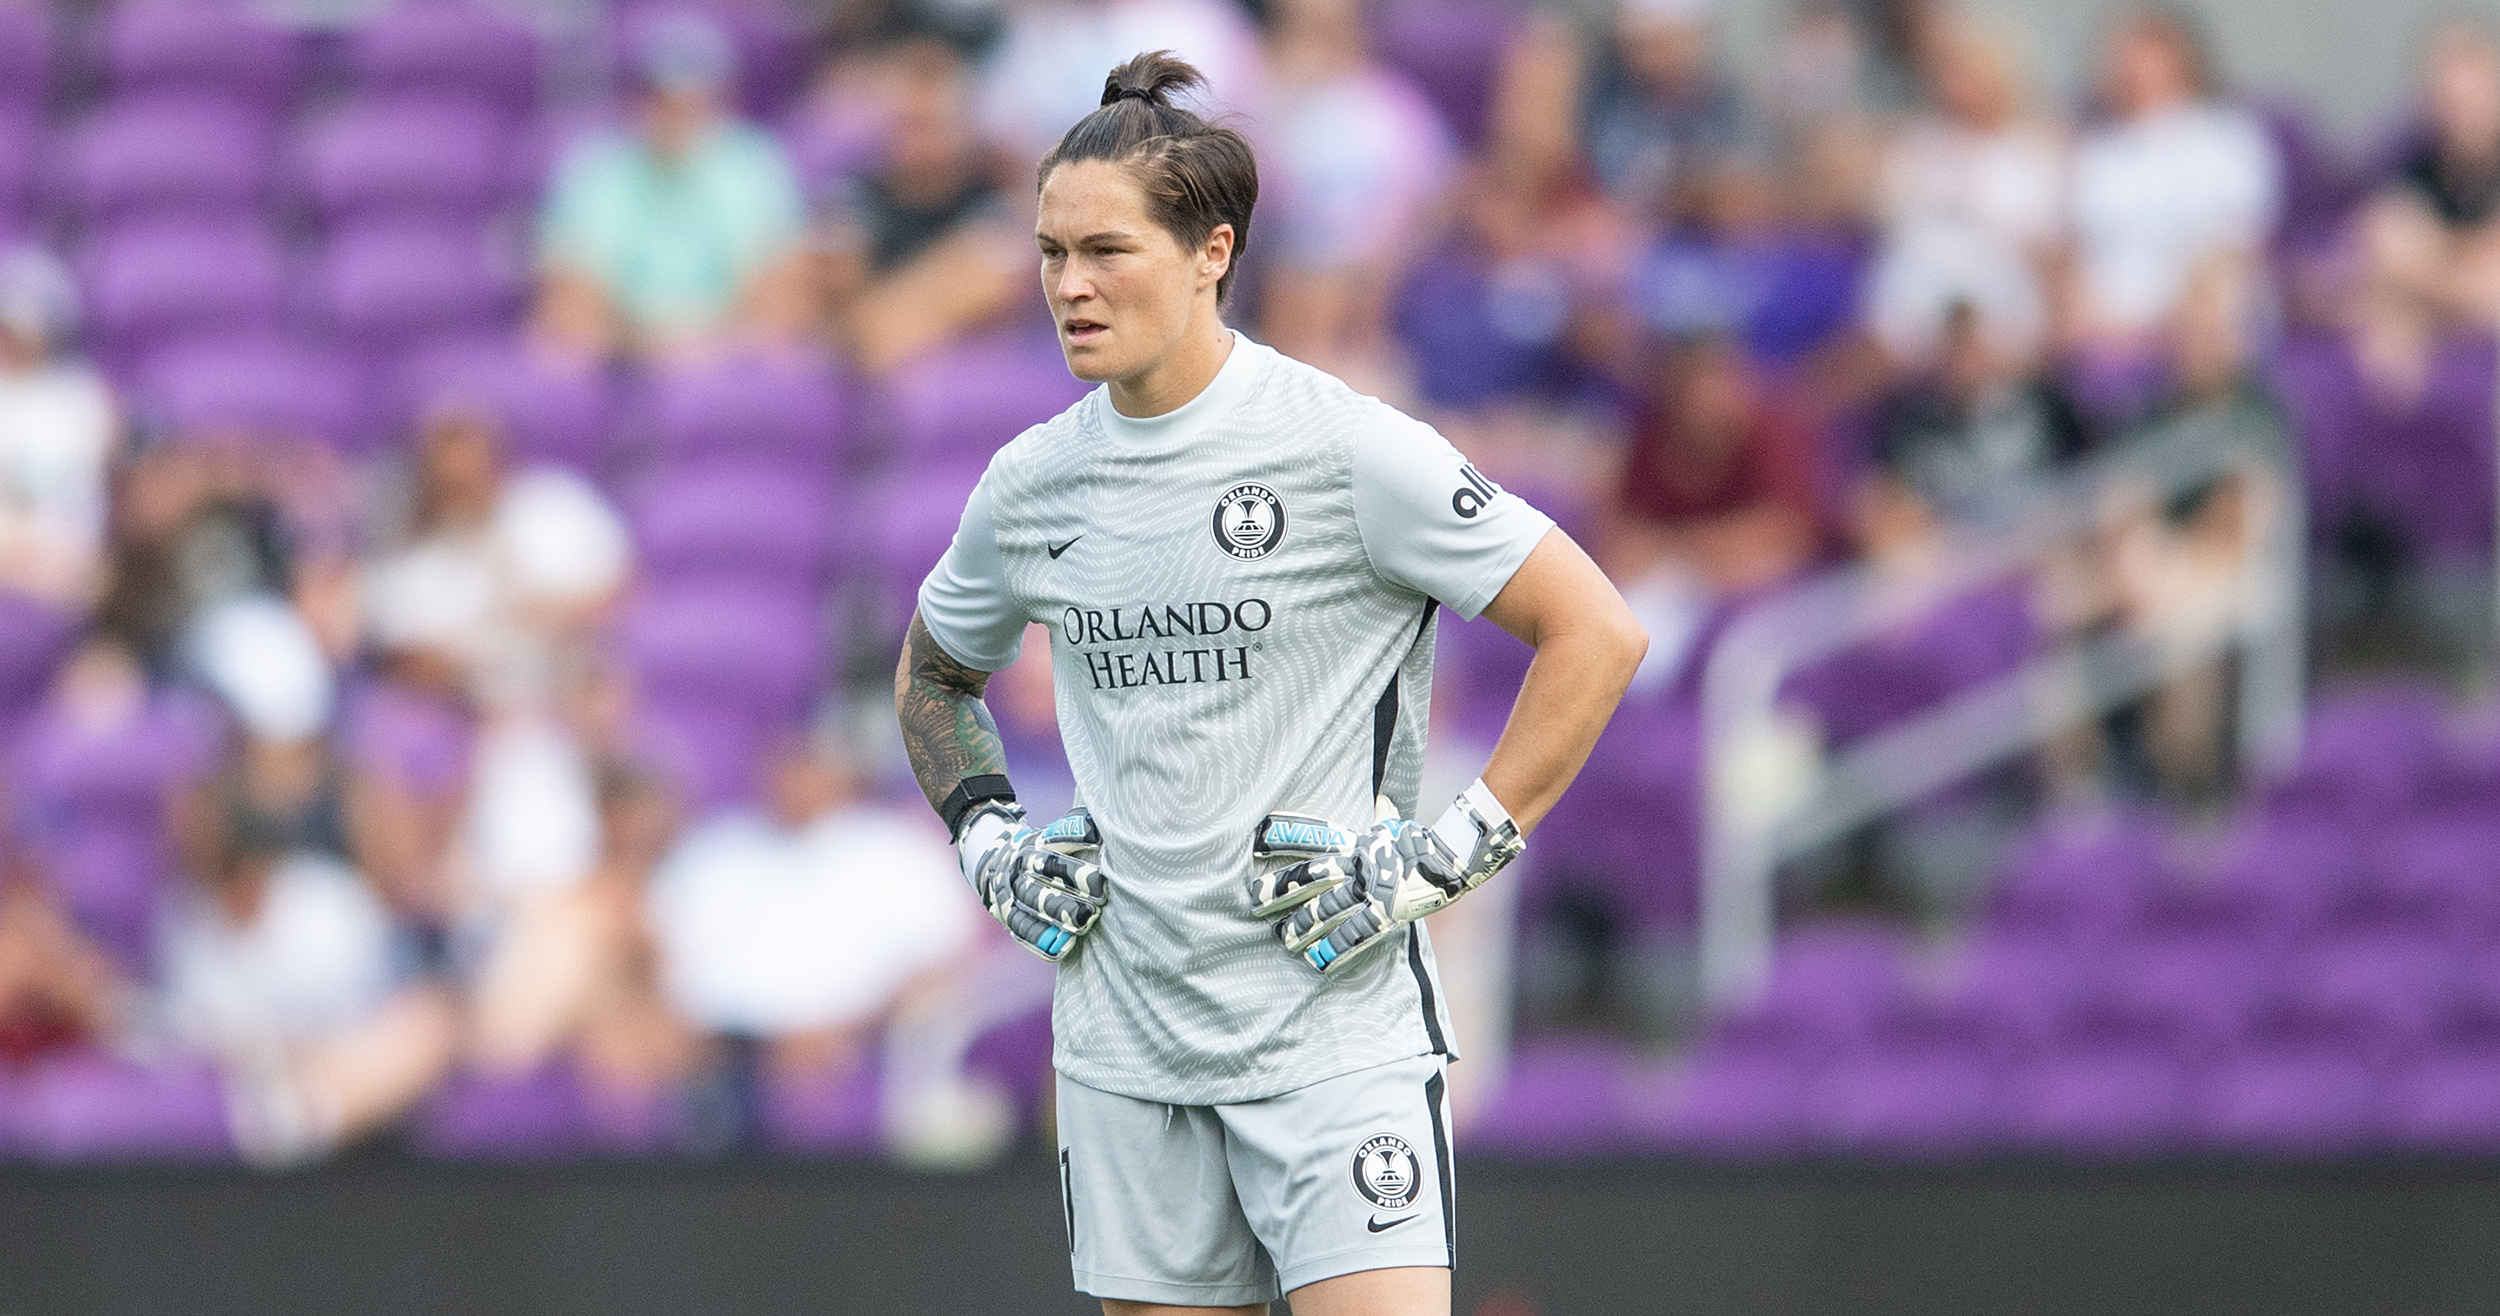 National Women's Soccer League can't be viewed as safe workplace, some players say